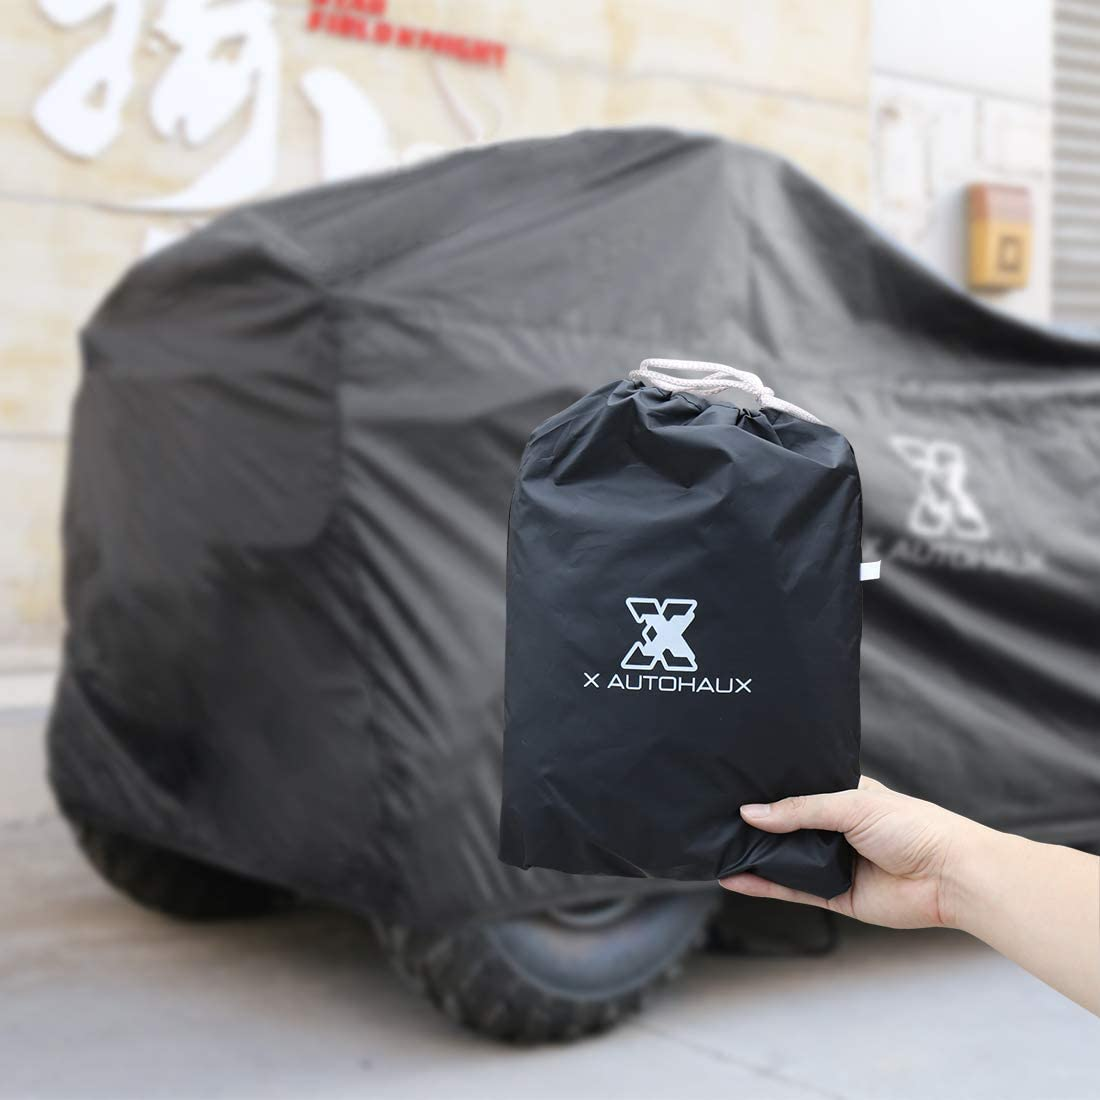 X AUTOHAUX Waterproof All Weather Protector Quad ATV Cover 4 Wheelers Cover Universal Fit Black with Silver Coating Inside XXXL Size 100.8 x 43.3 x 47.2 Inch